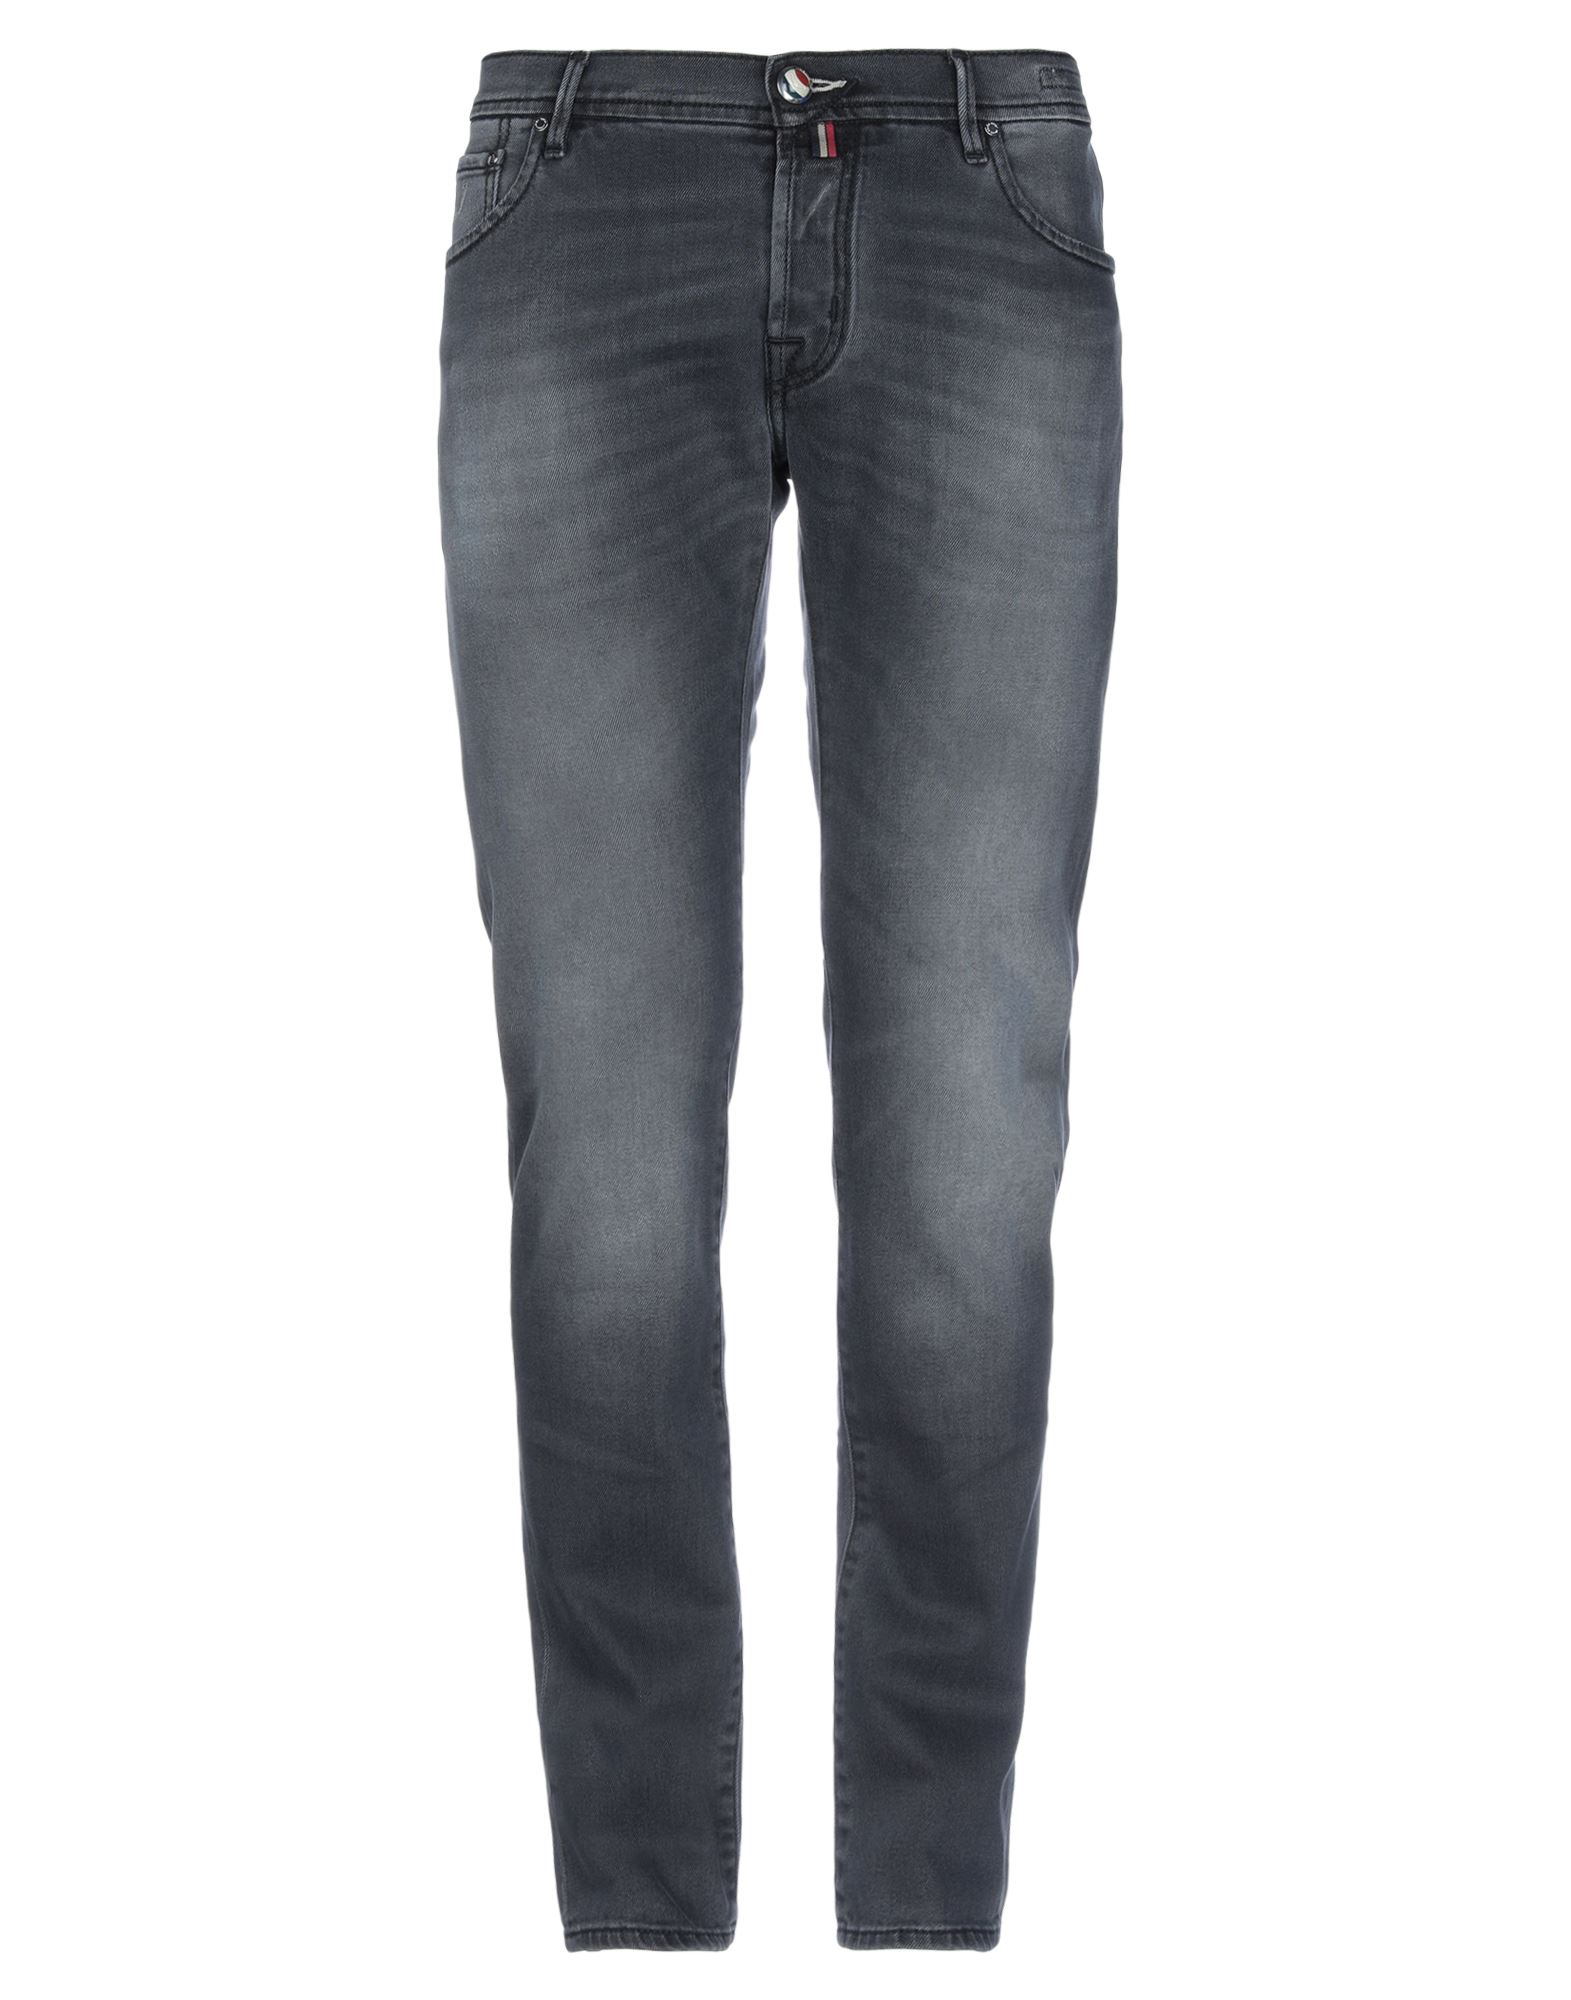 JACOB COHЁN Denim pants - Item 42828972